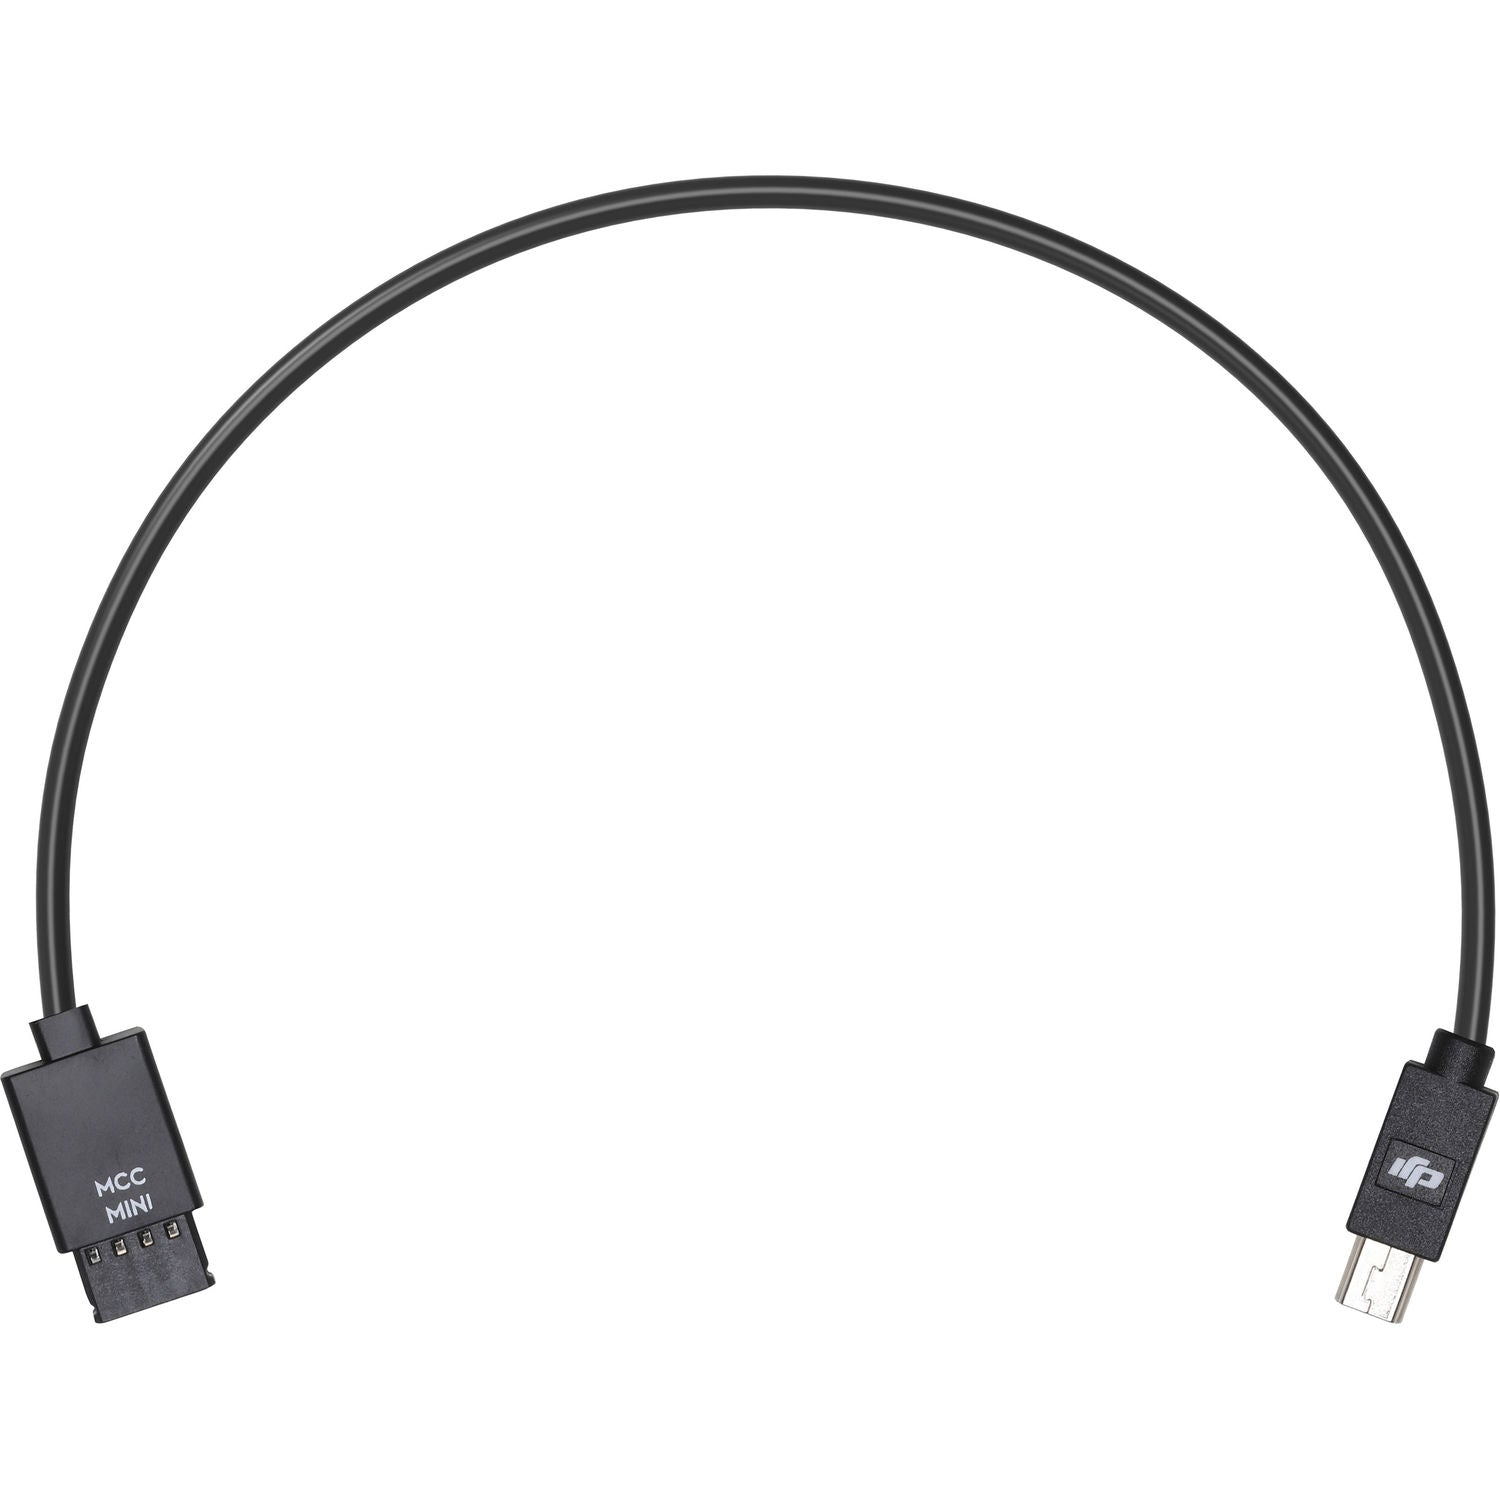 DJI Ronin-S Multi-Camera Control Cable (Mini-USB) Part 12